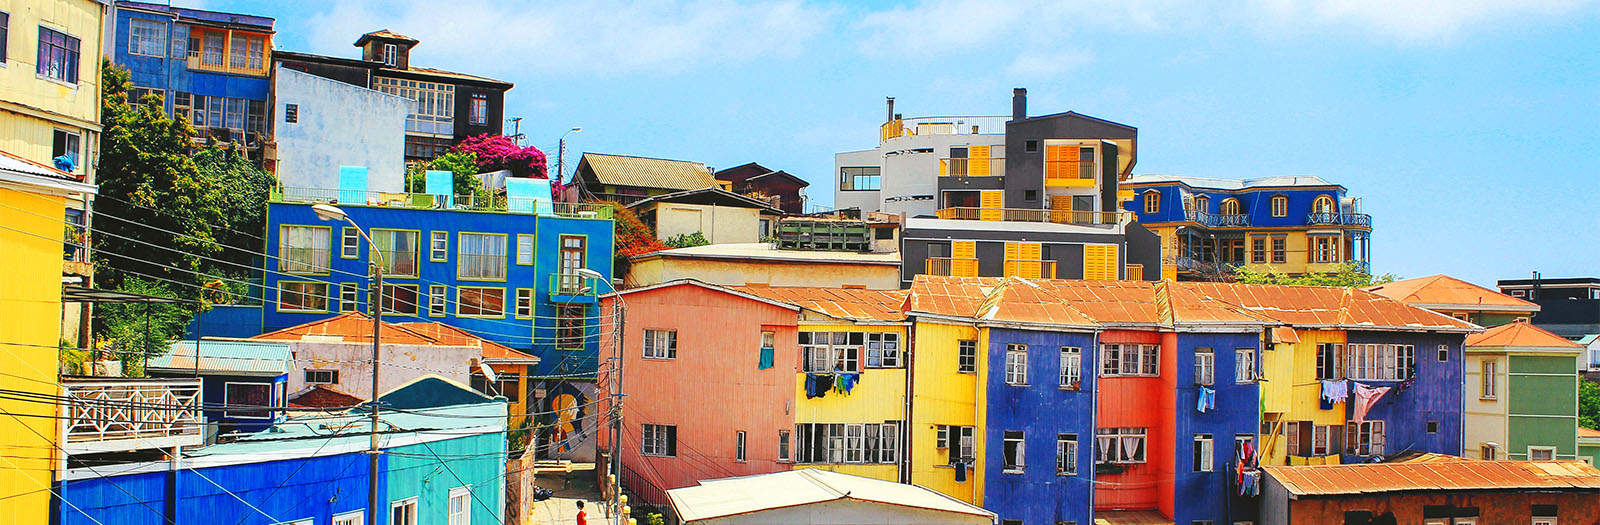 photo of colourful clifftop buildings in Valparaiso, Chile